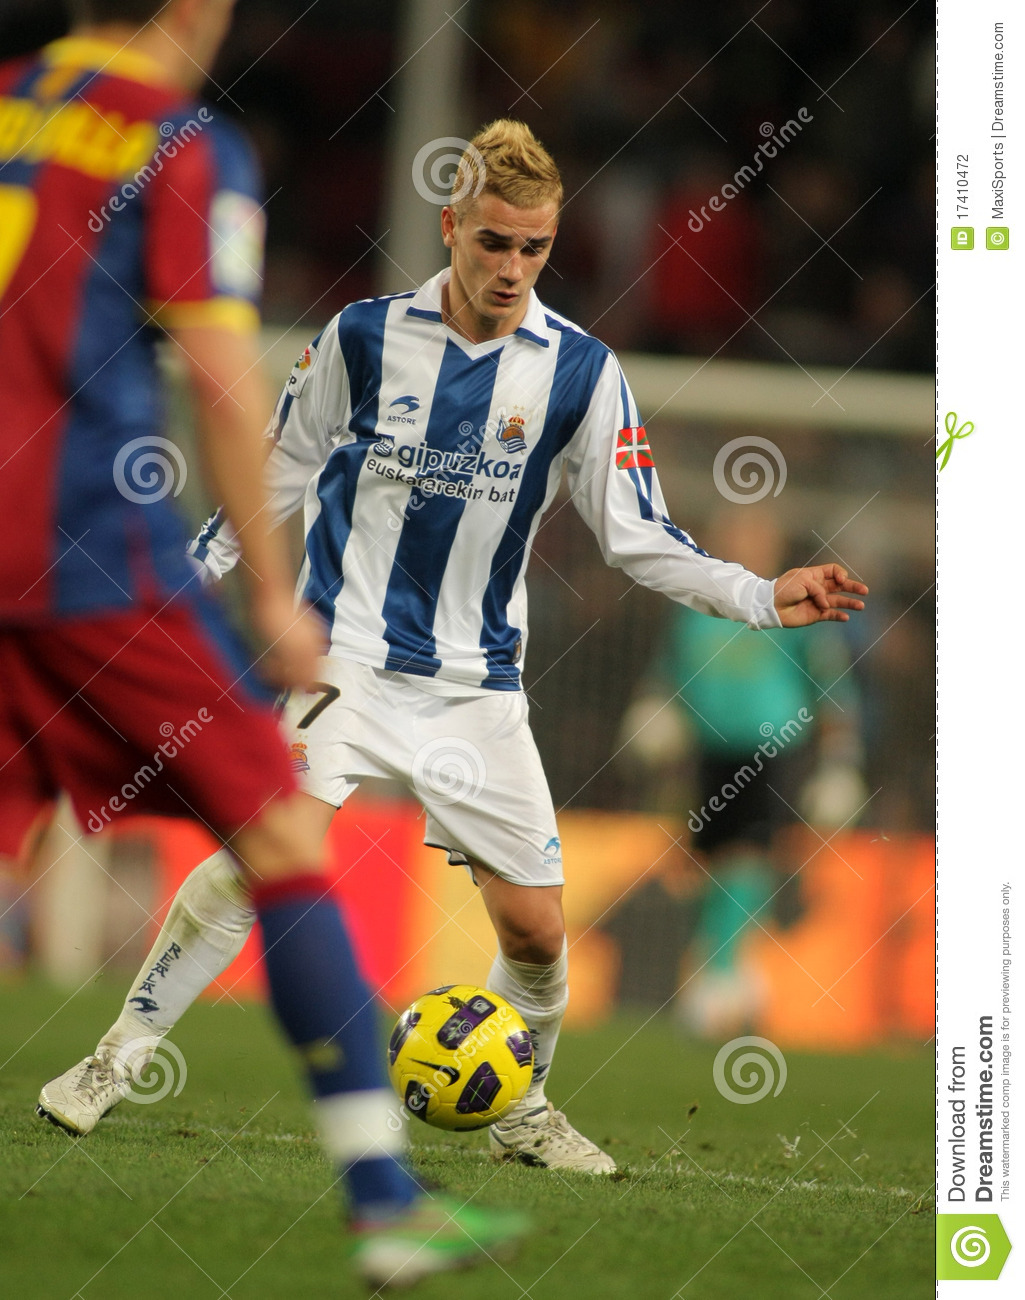 antoine griezmann of real sociedad editorial photography